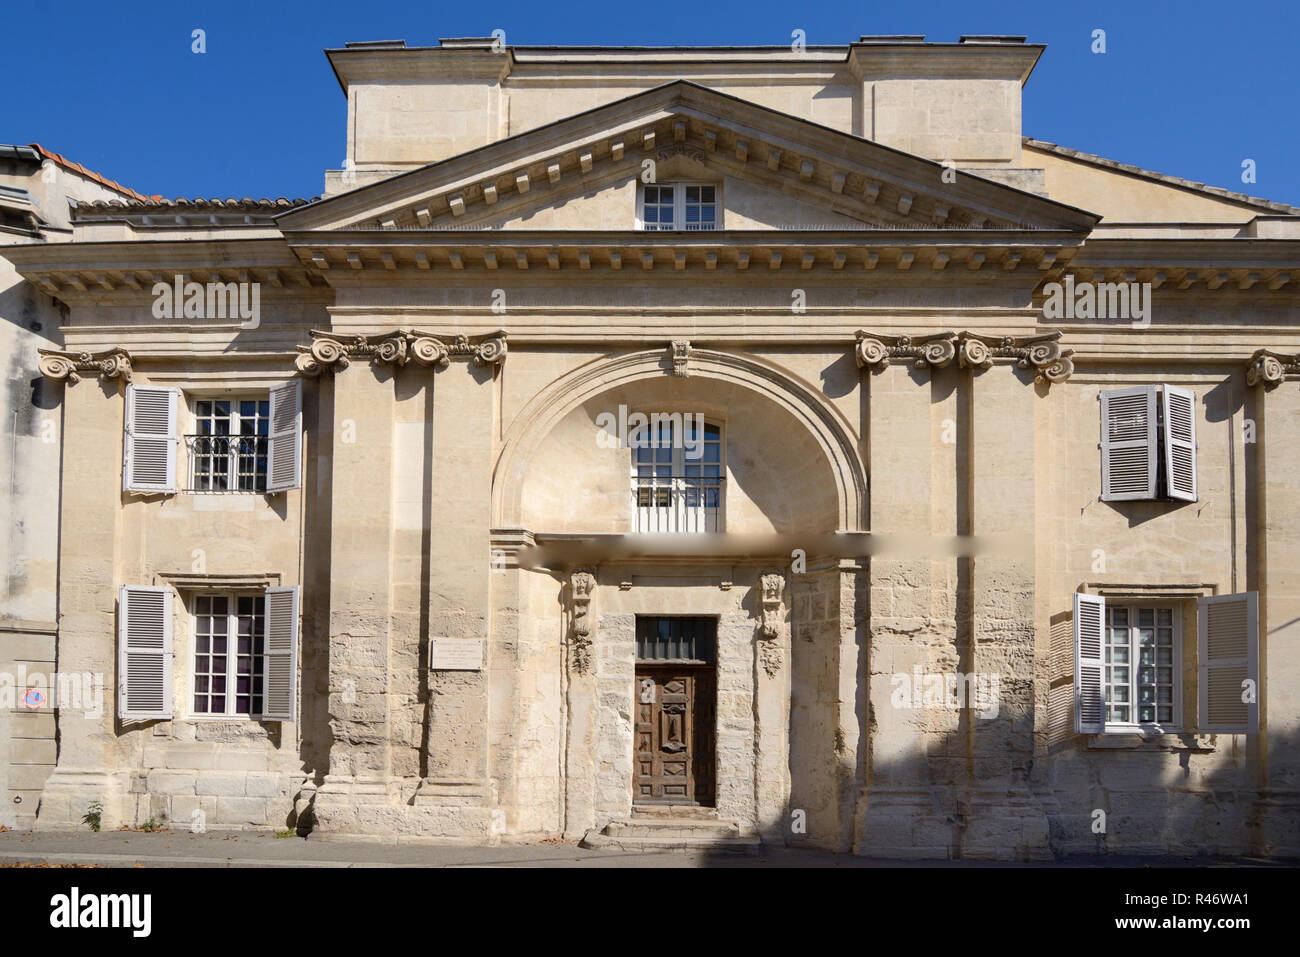 Classical Facade of Eglise des Minimes c16-18th, founded 1326, or Minimes Church, formerly Eglise Notre Dame des Miracles, Avignon Provence France - Stock Image